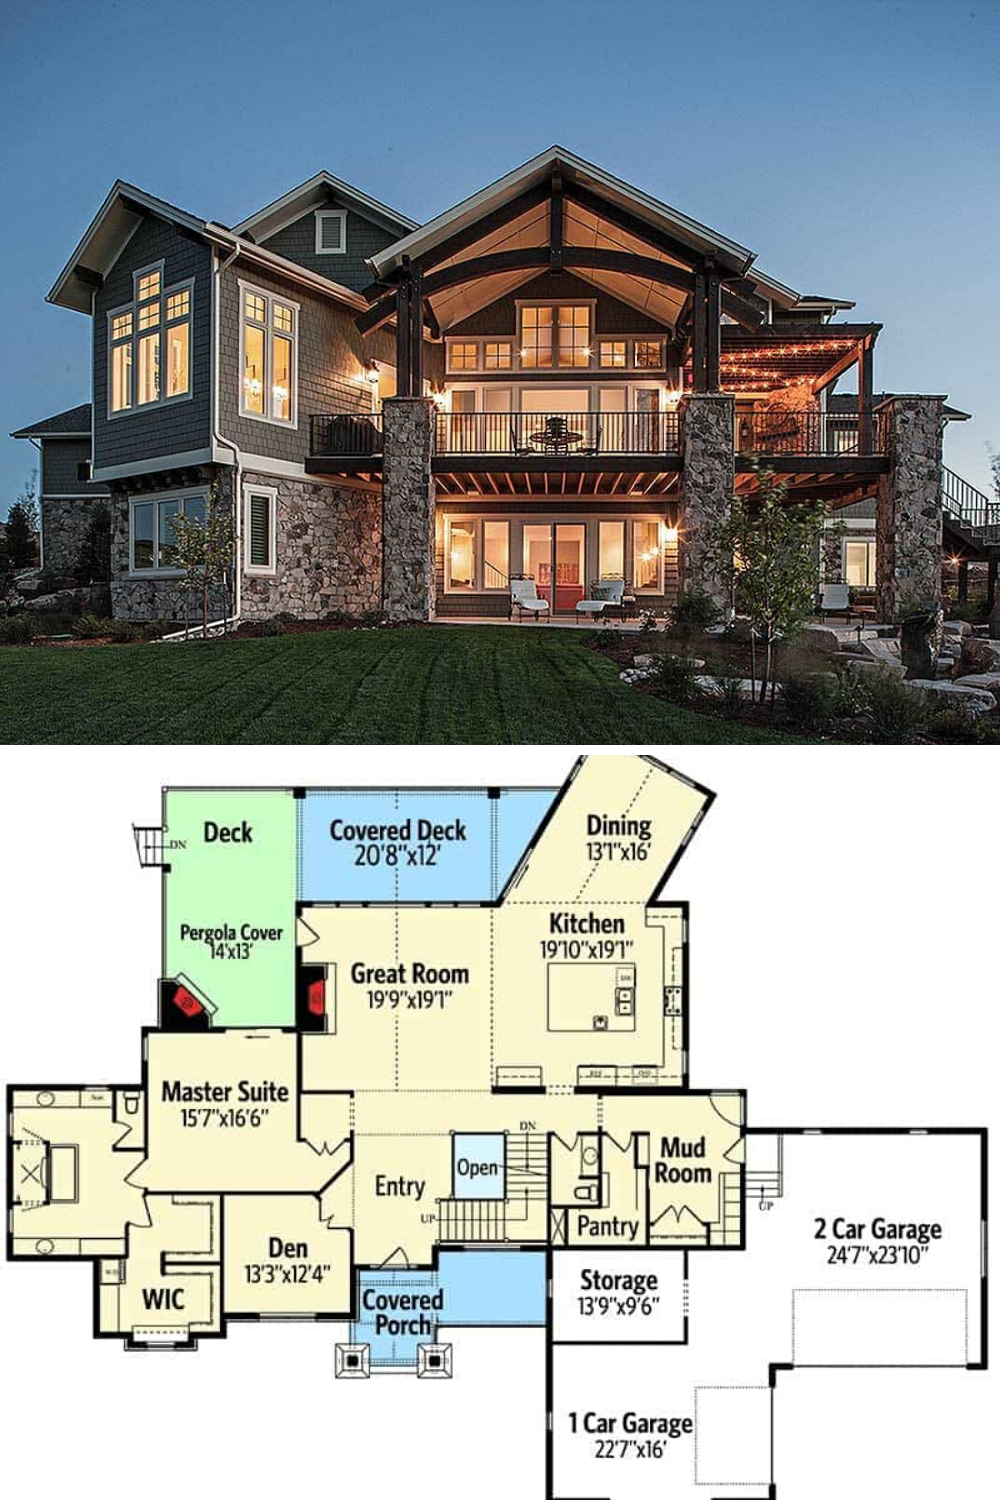 5 Bedroom Two Story Traditional Home With Craftsman Appeal Floor Plan In 2020 Craftsman House Plans Craftsman Style House Plans House Architecture Design